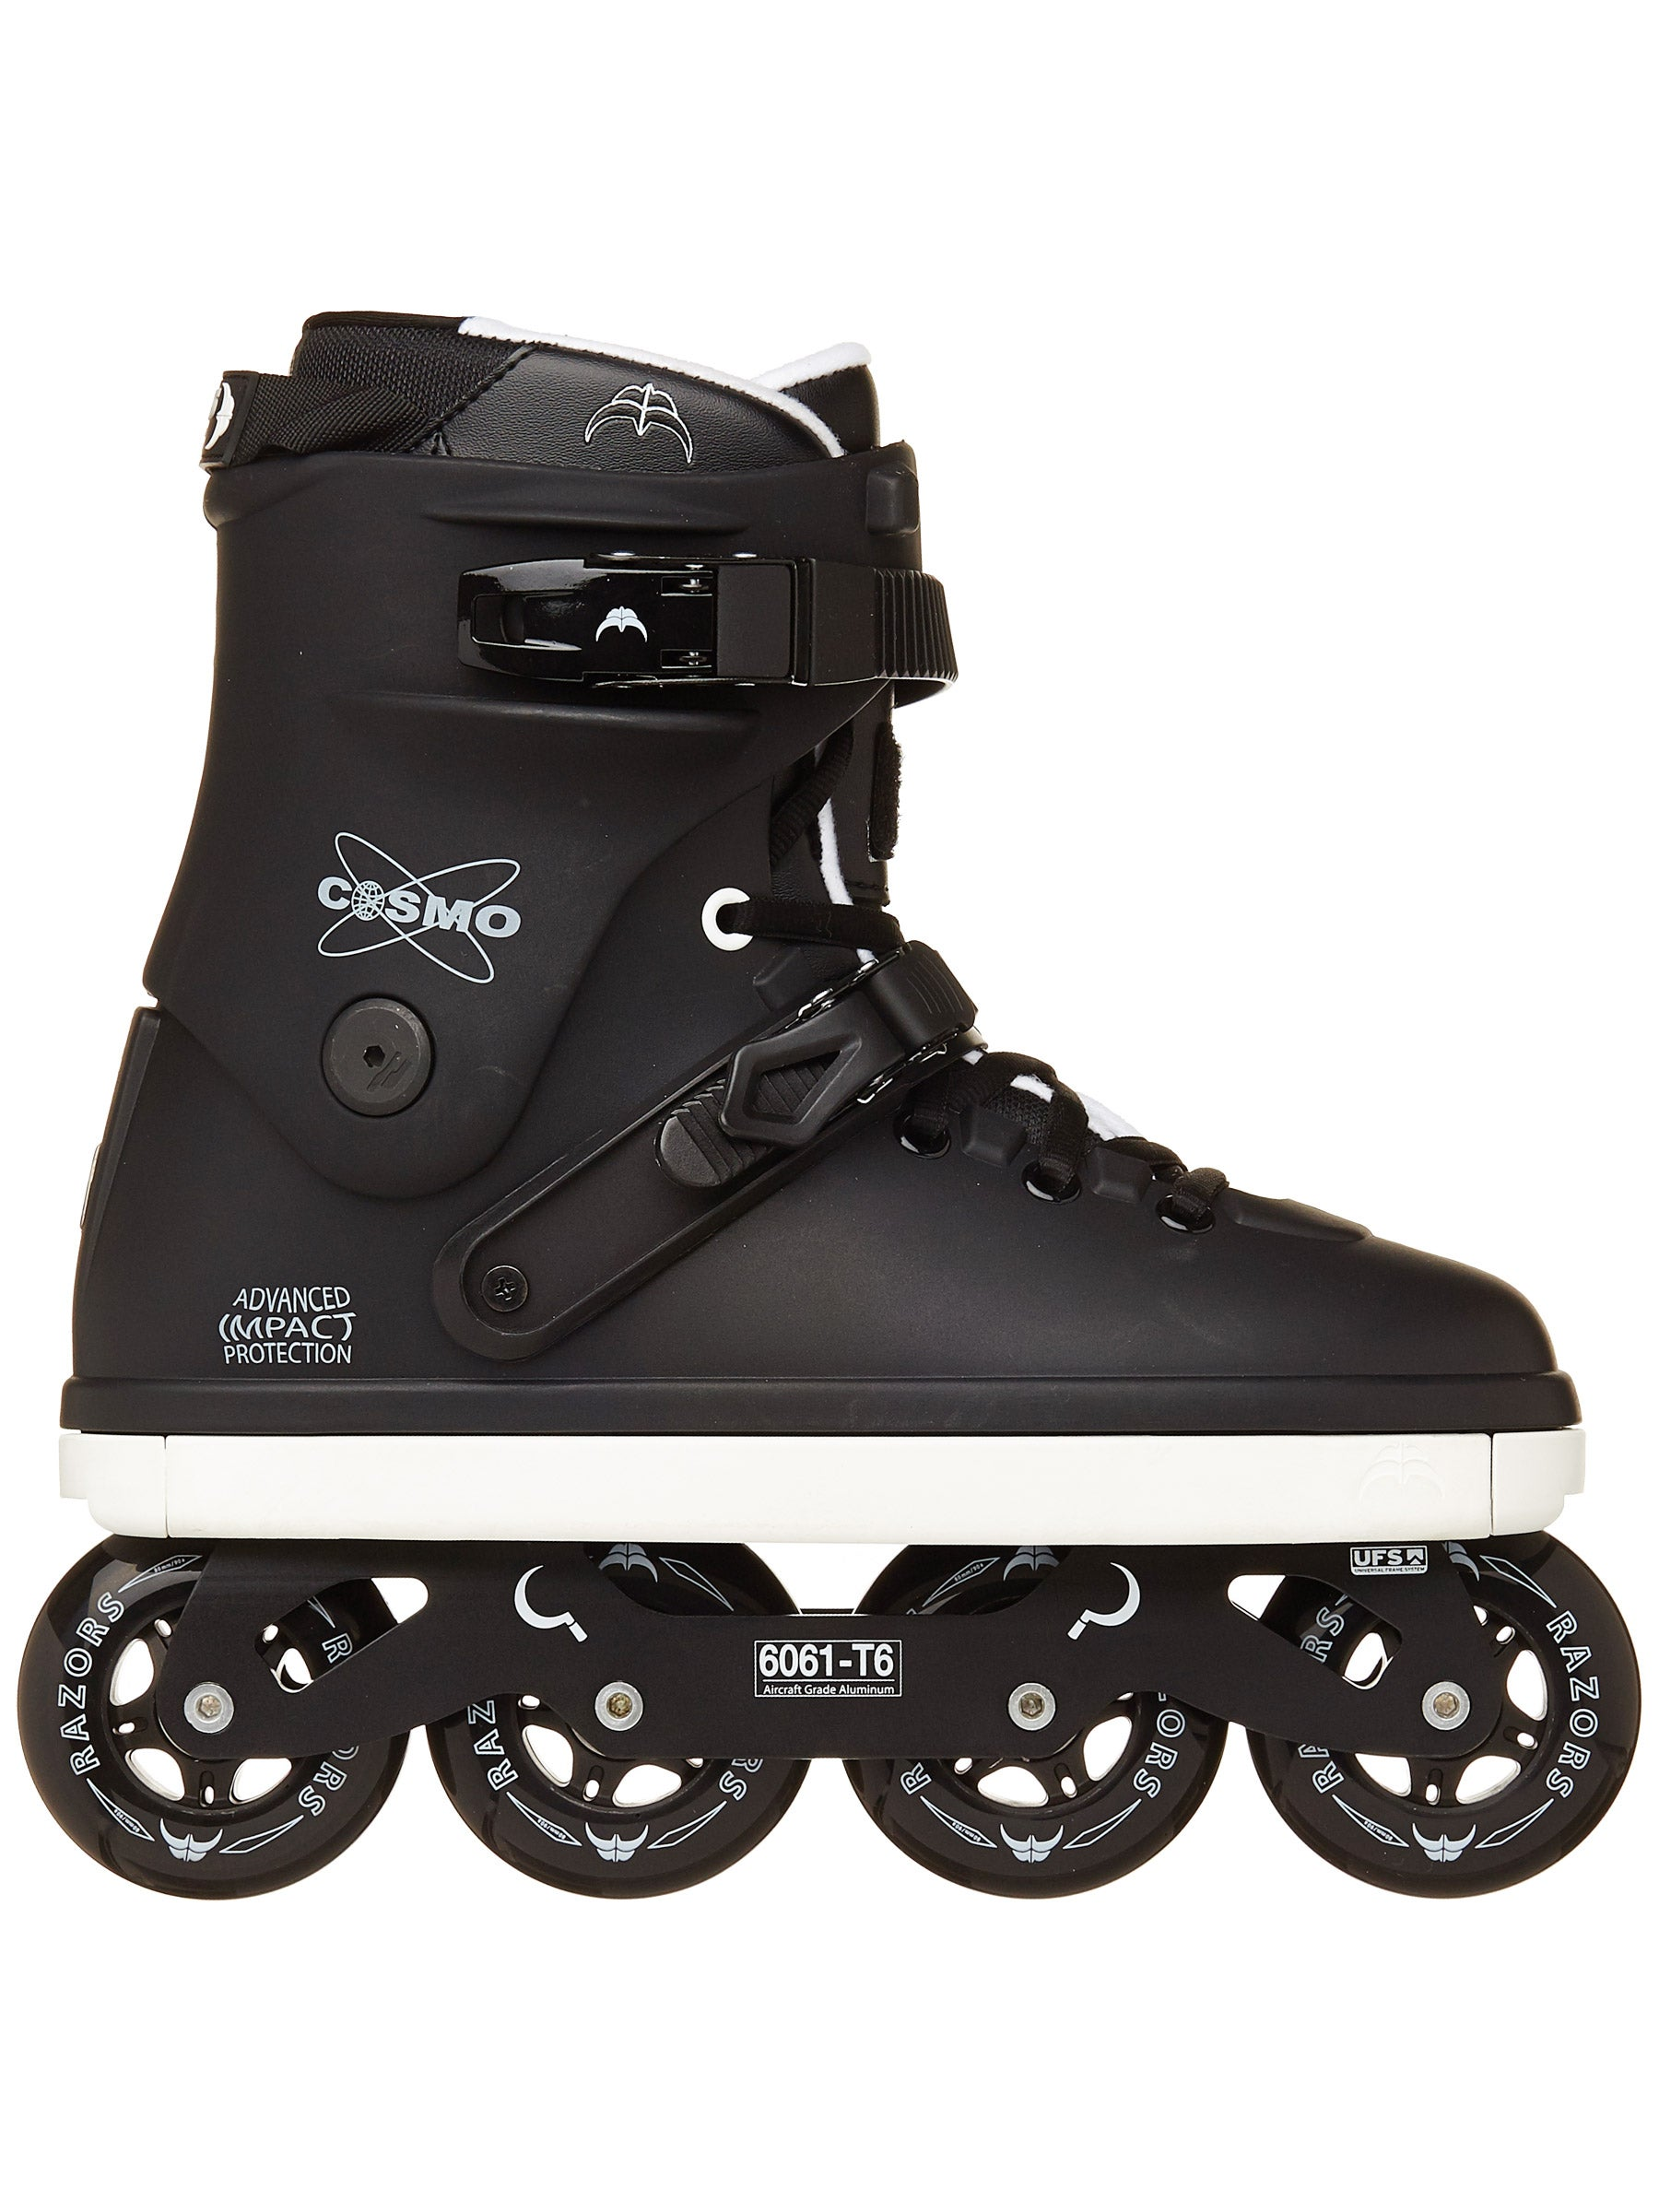 Inlineskating-Artikel Razors Shift 2 Aggressive Inline Skates Mens 10.5 NEW